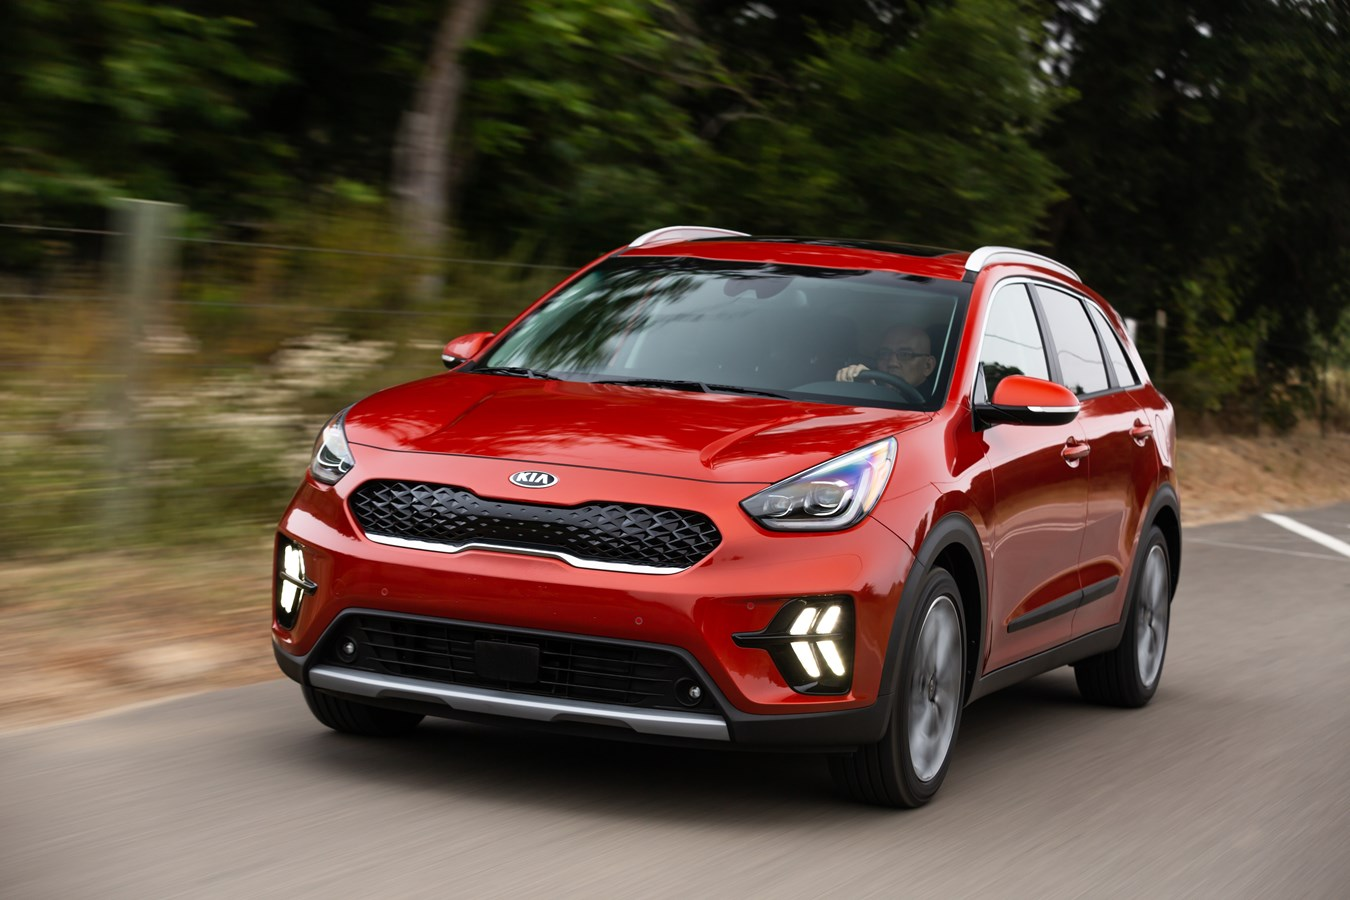 Refreshed 2020 Kia Niro Lands at LA AutoShow